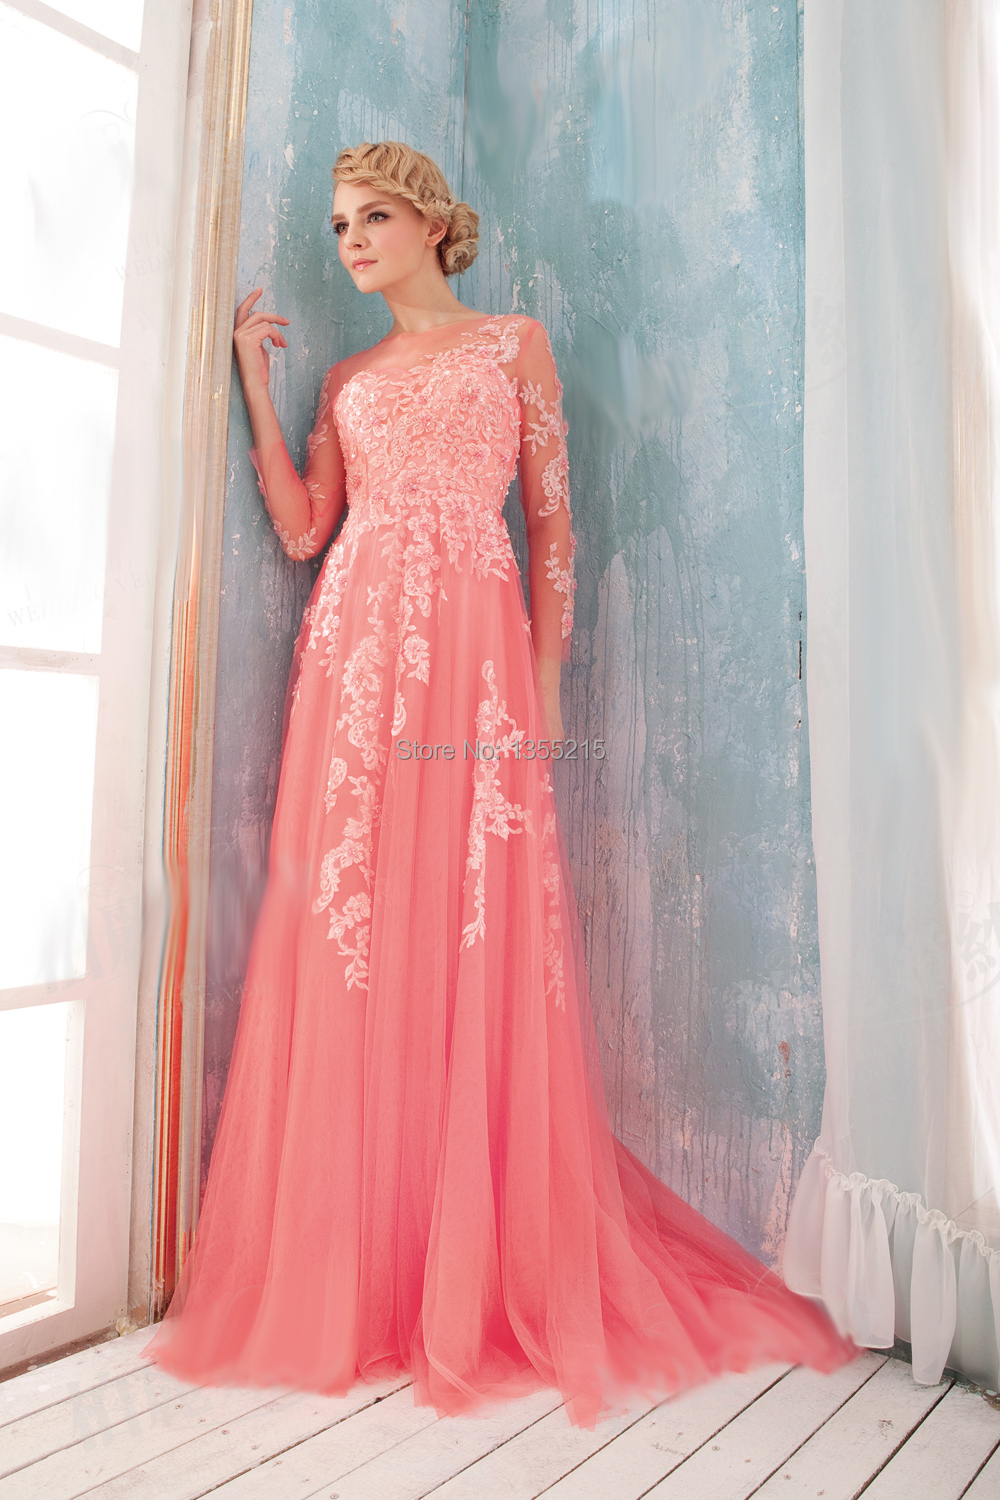 Classy Any Changes Requests Are Not Acceptable After Orderplaced Exceeds If Exceed Size Or Color Or Details Ofyour Custom Long Sleeve Formal Dresses Coral Prom Dress Long